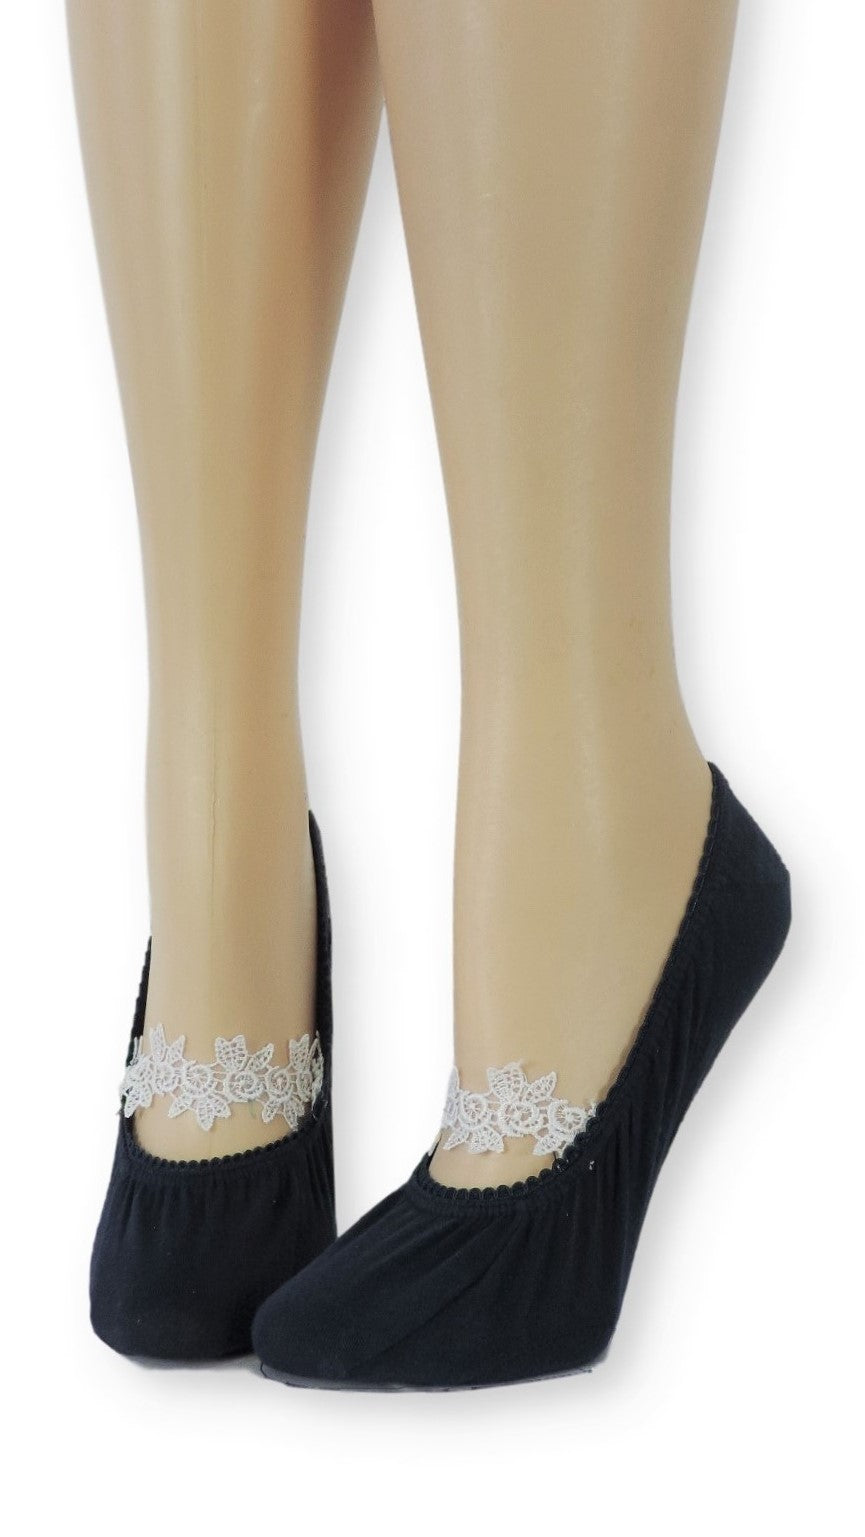 Sleek Ankle Socks with Floral white Lace